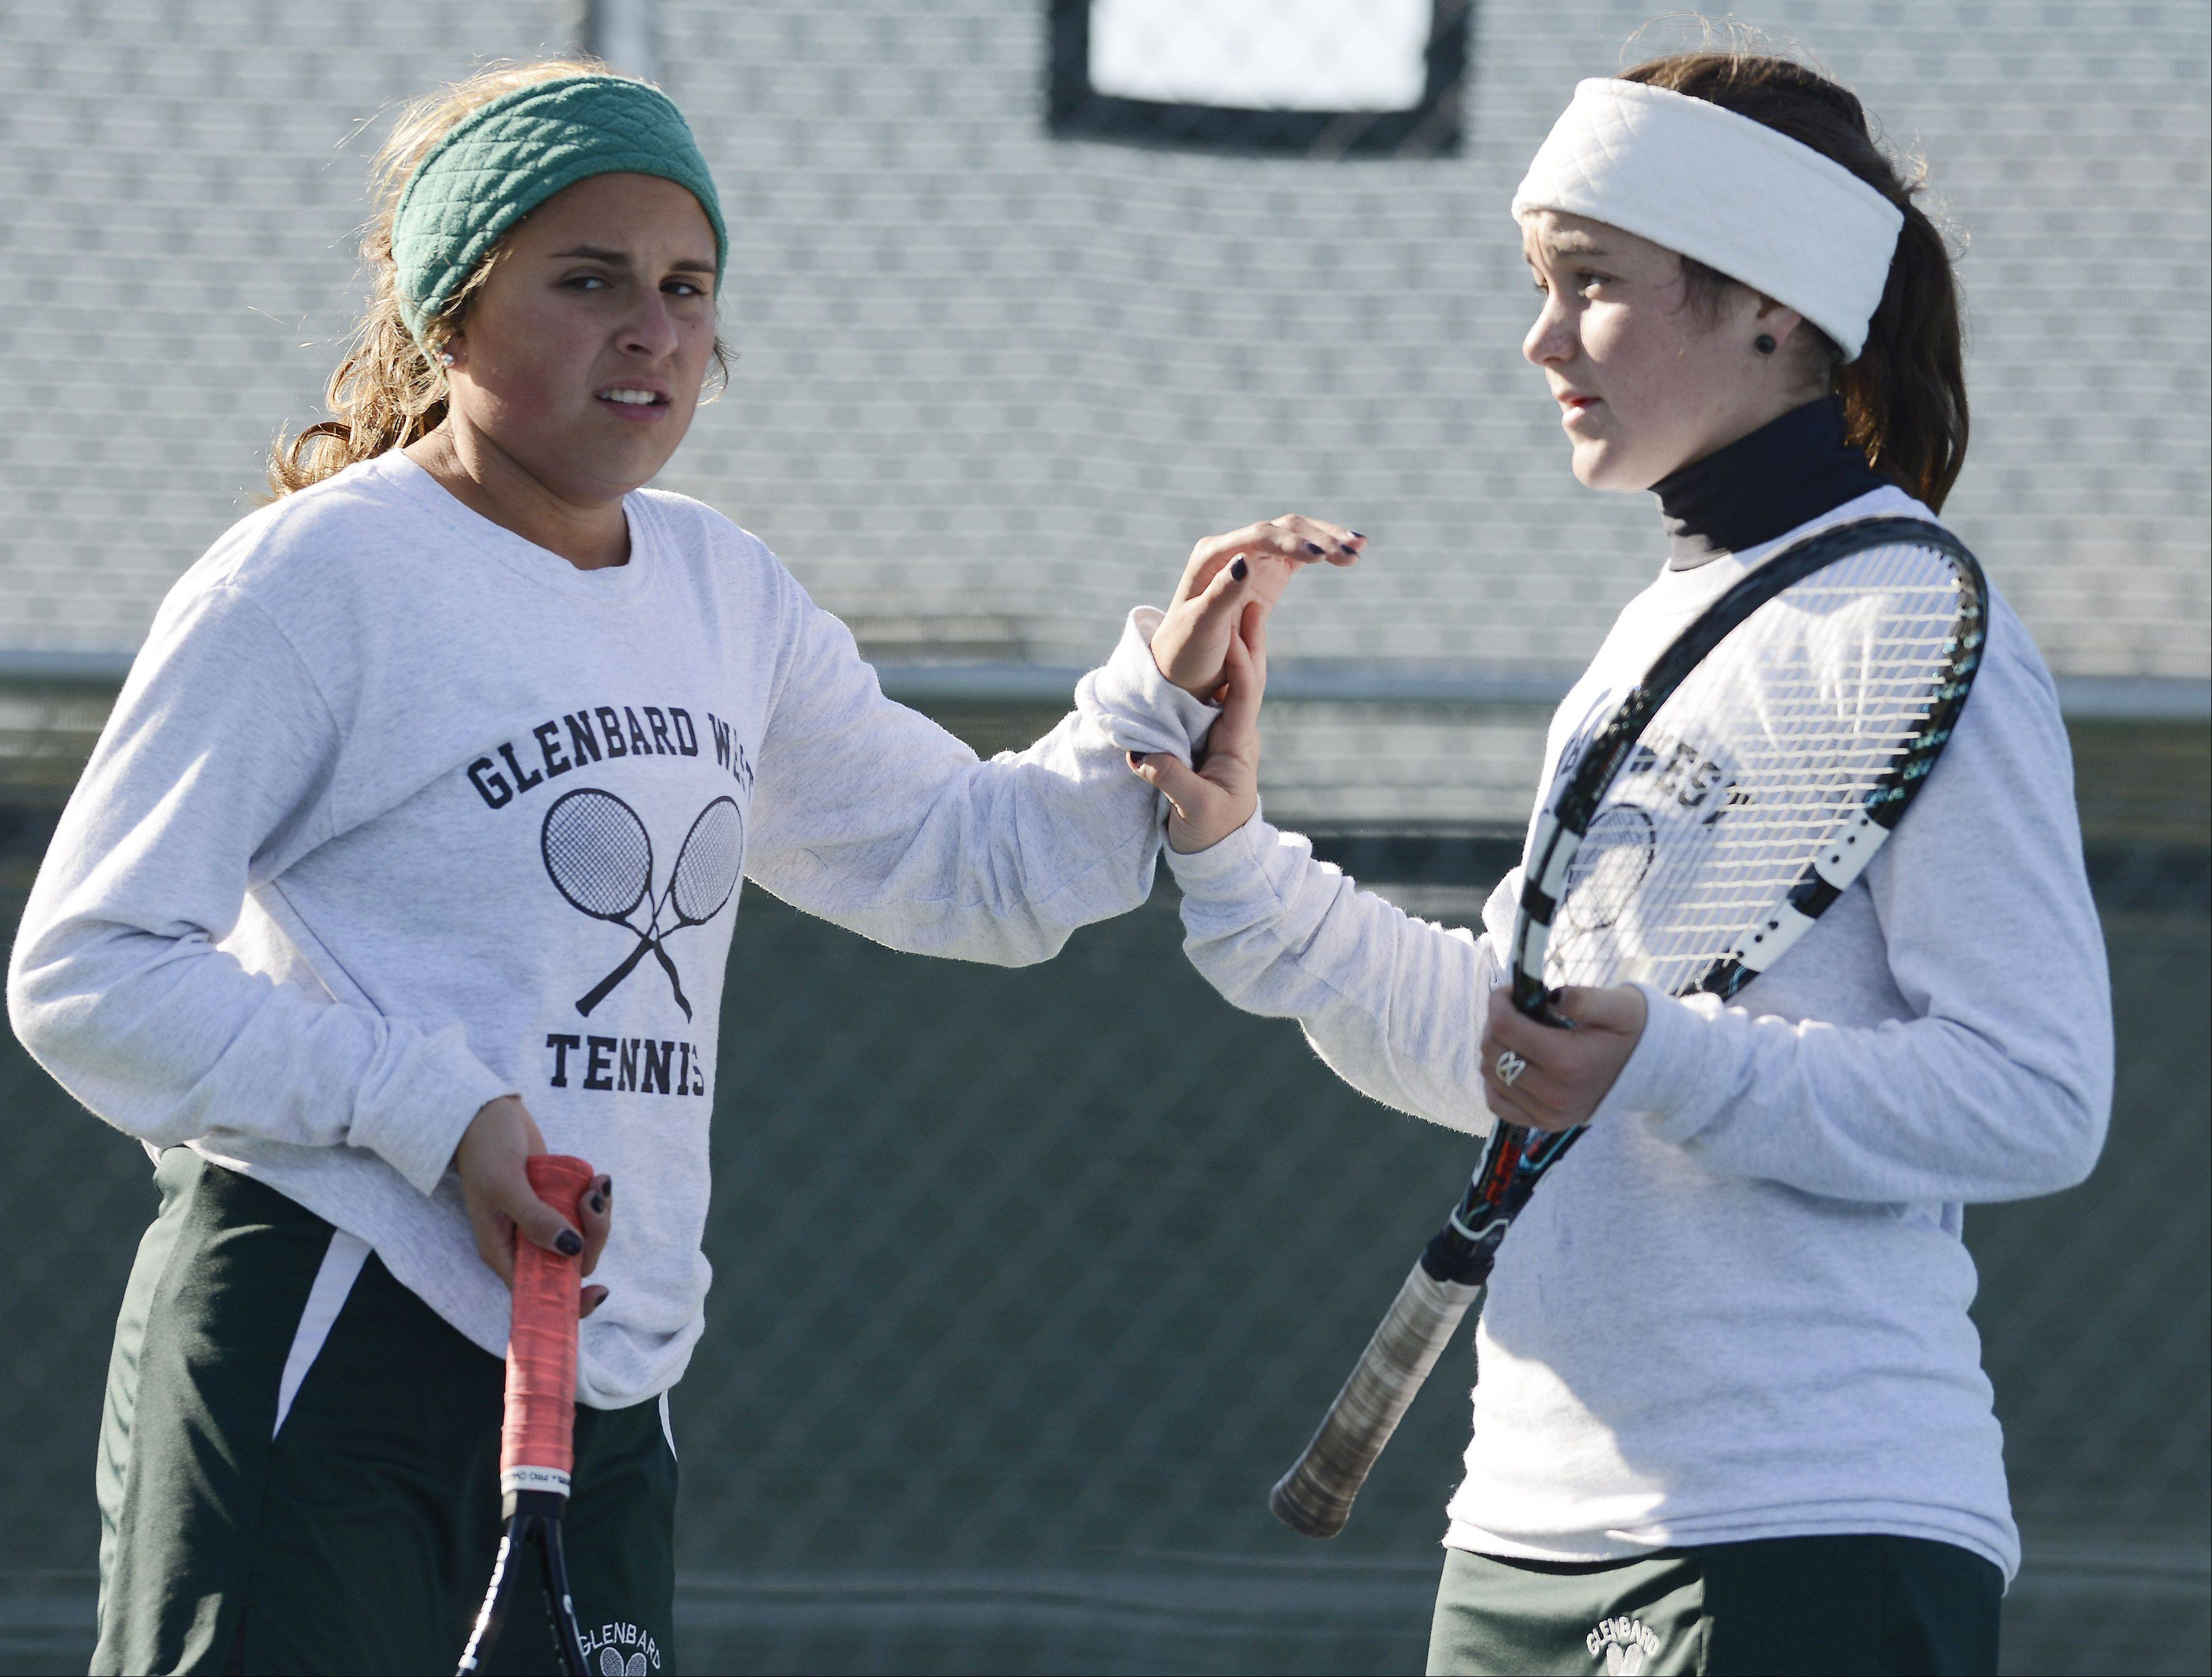 Glenbard West's Maggie Hughes, left, and Elizabeth Ficarella congratulate one another after a point during the girls state tennis preliminaries at Prospect High School Thursday.